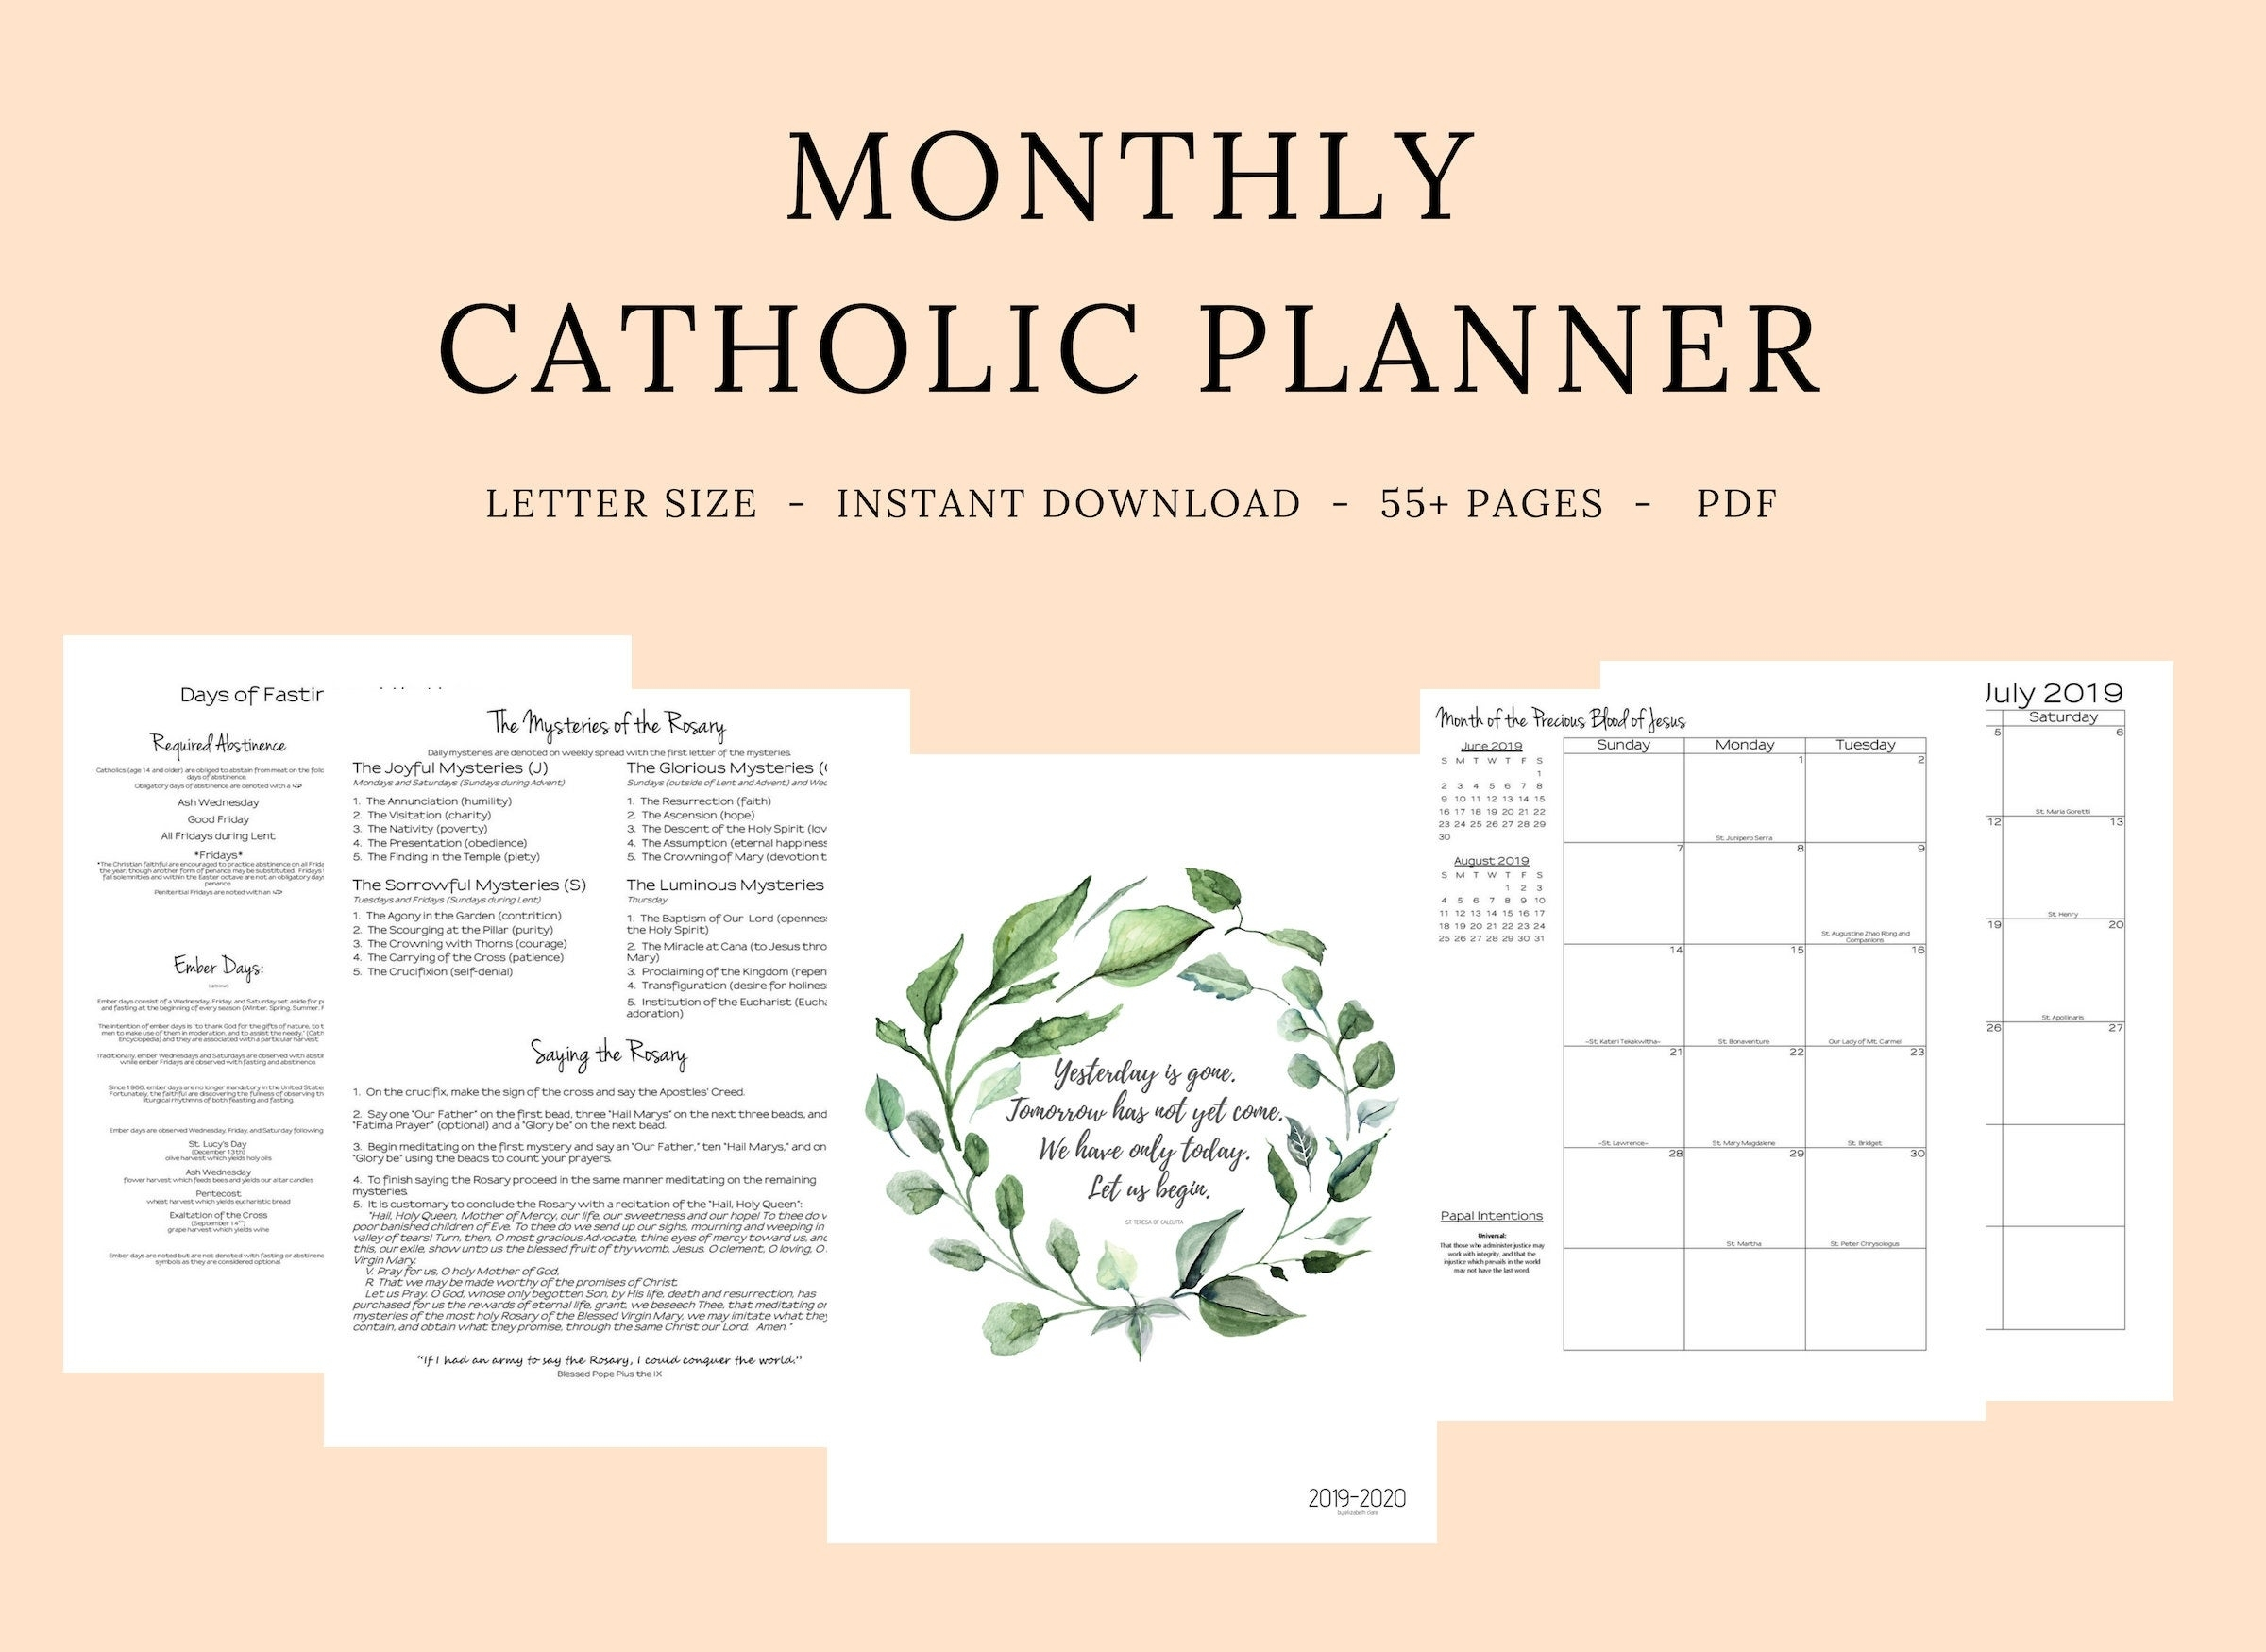 2019 2020 Catholic Planner Monthly Printable: Monthly | Etsy inside Catholic Liturgical Calendar 2020 Printable